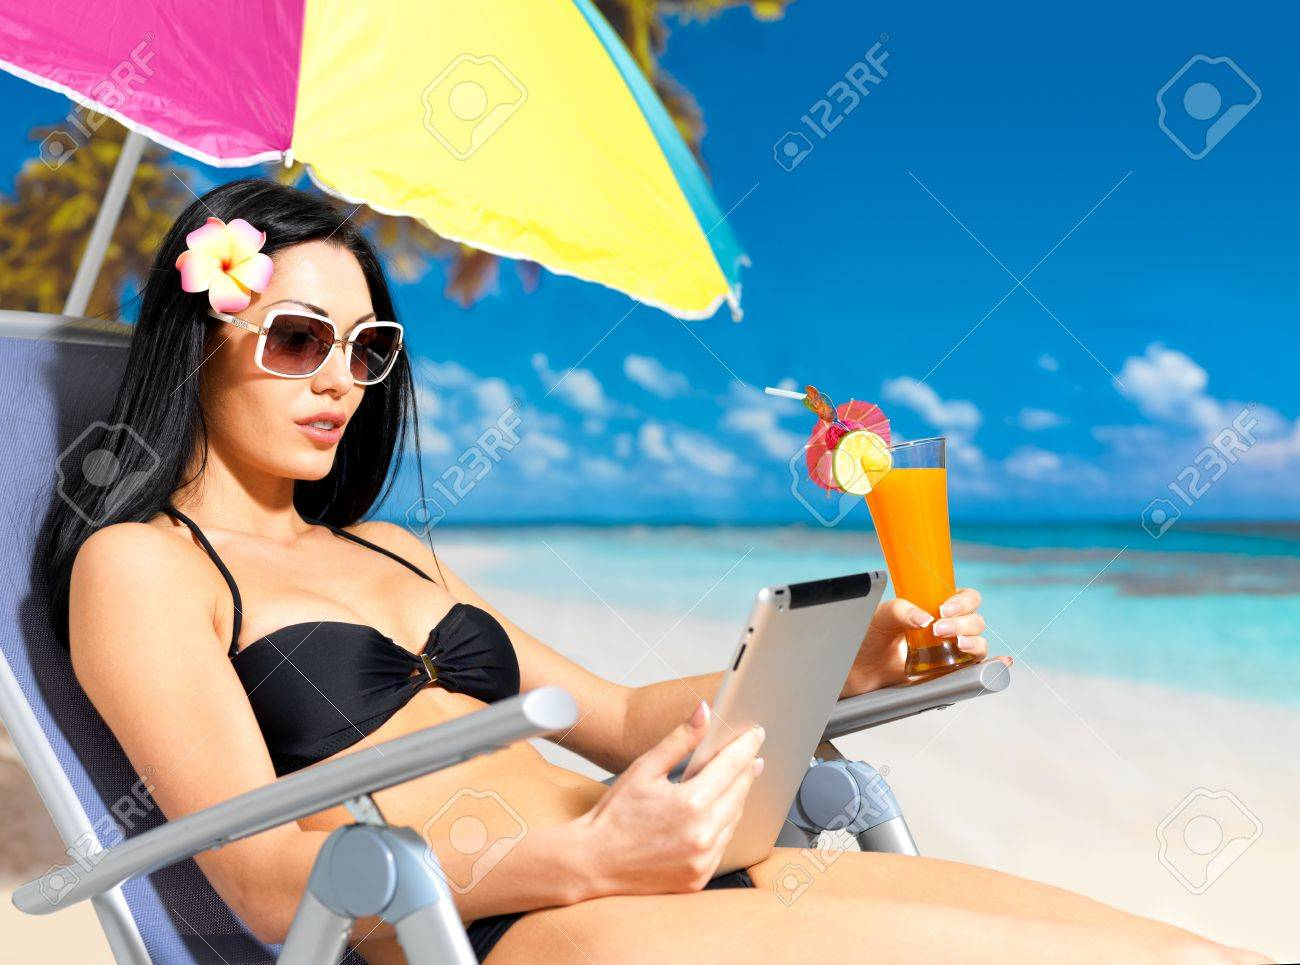 Beautiful woman on the beach with ipad. Vacation and communication concept. Stock Photo - 17447580